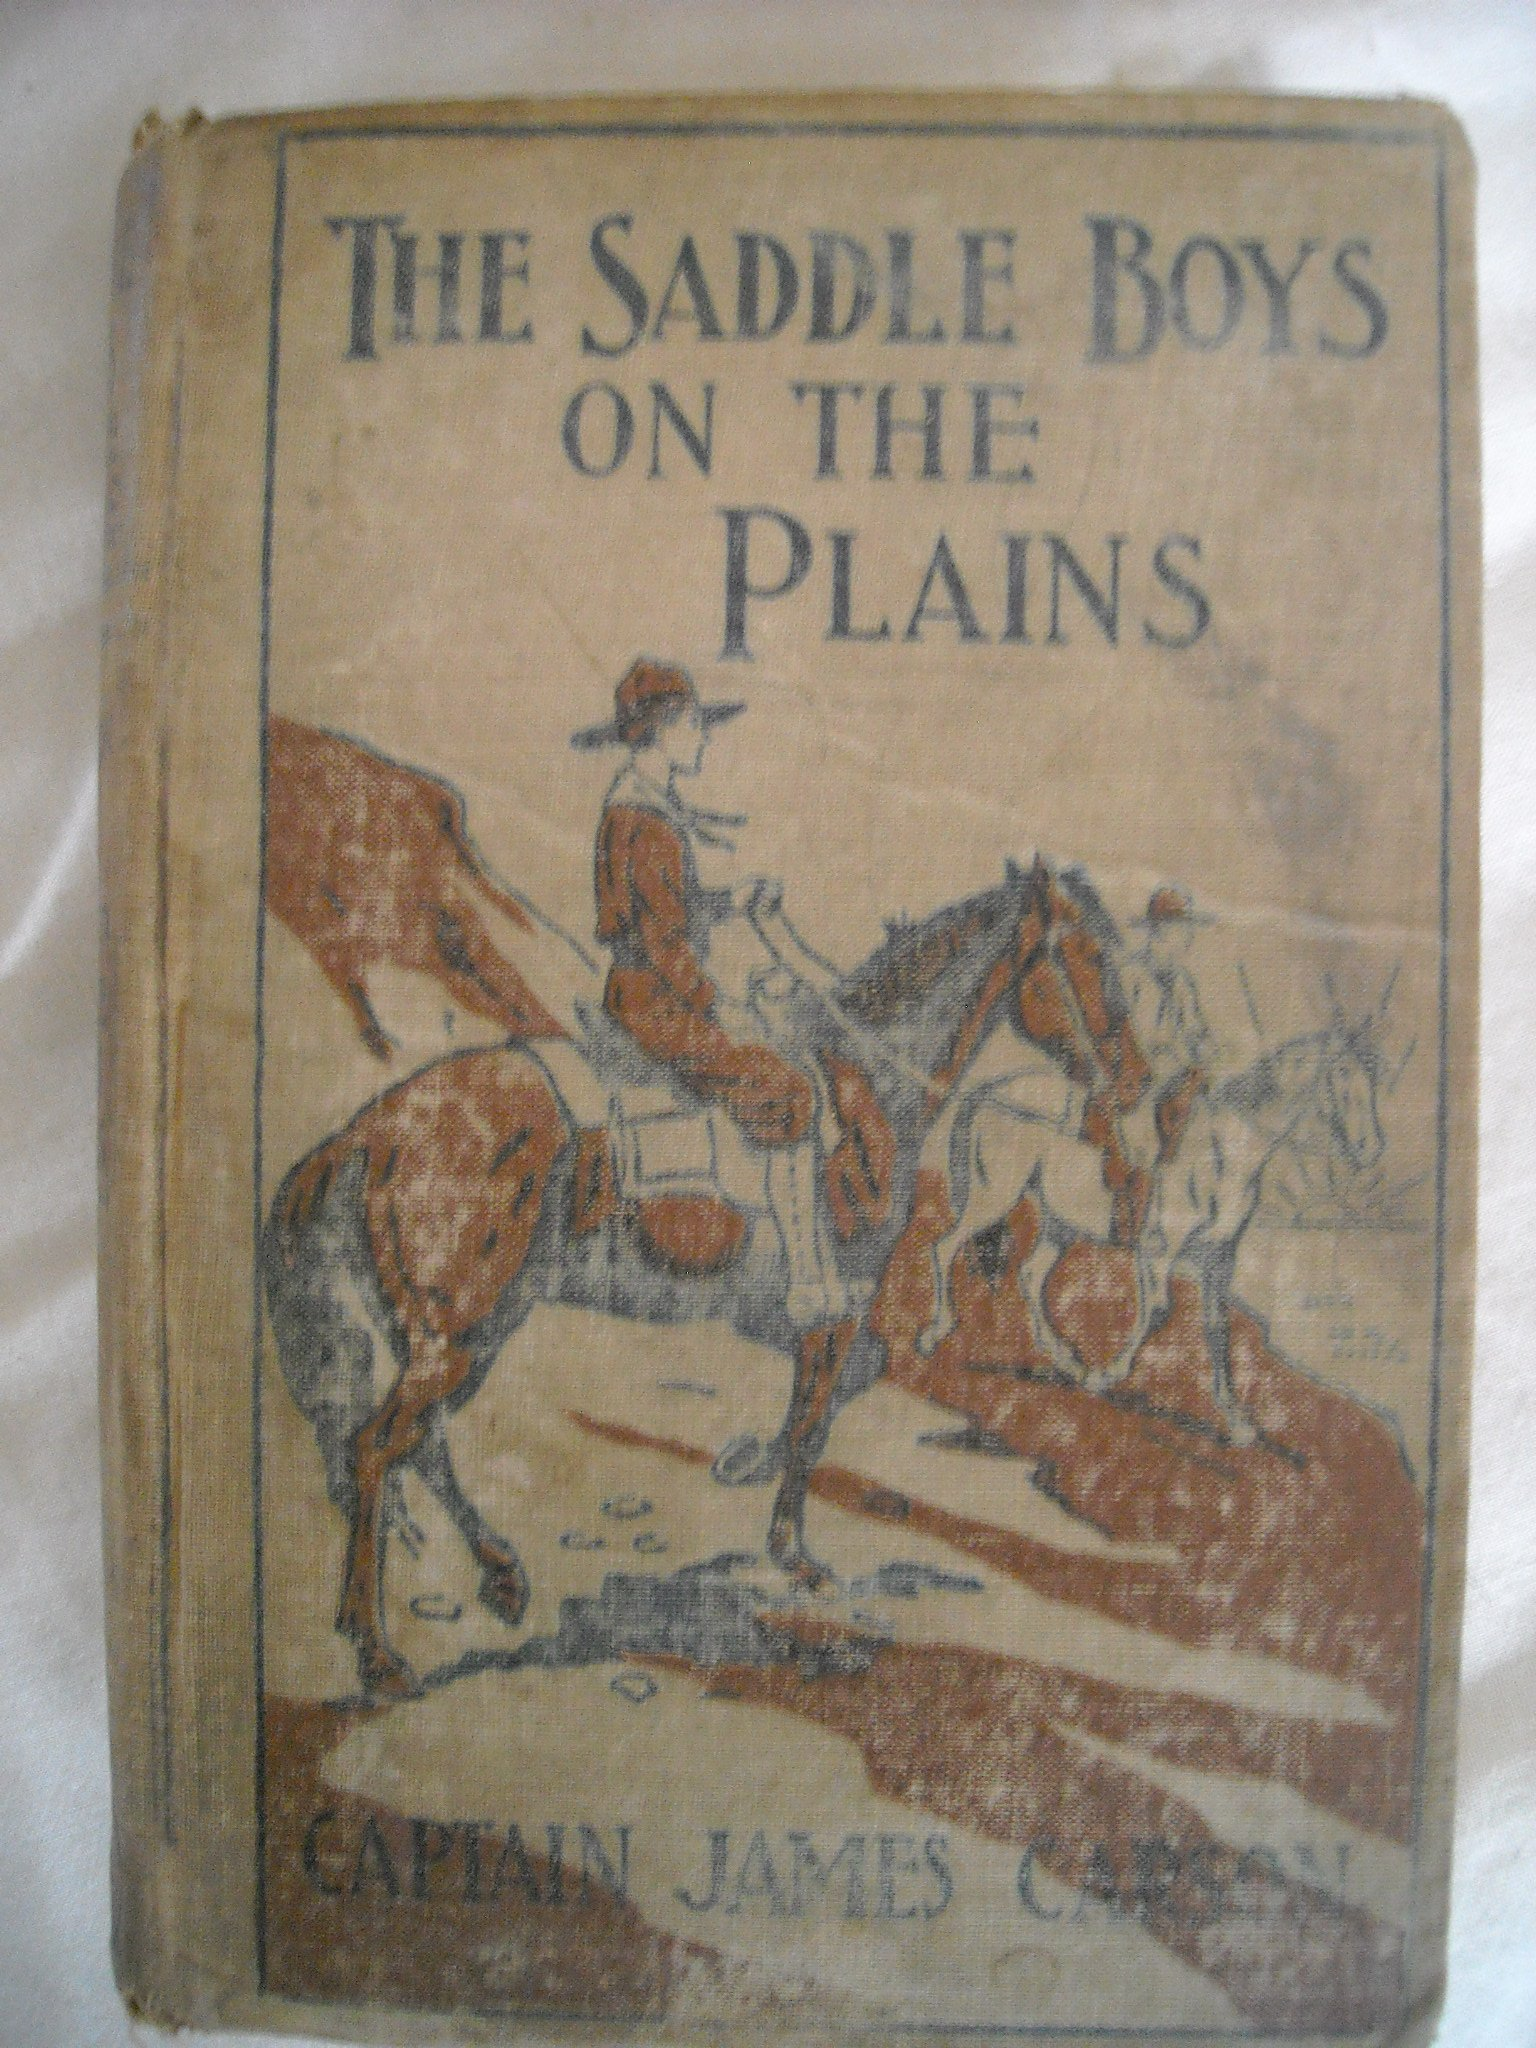 The Saddle Boys on the Plains or After a Treasure of Gold